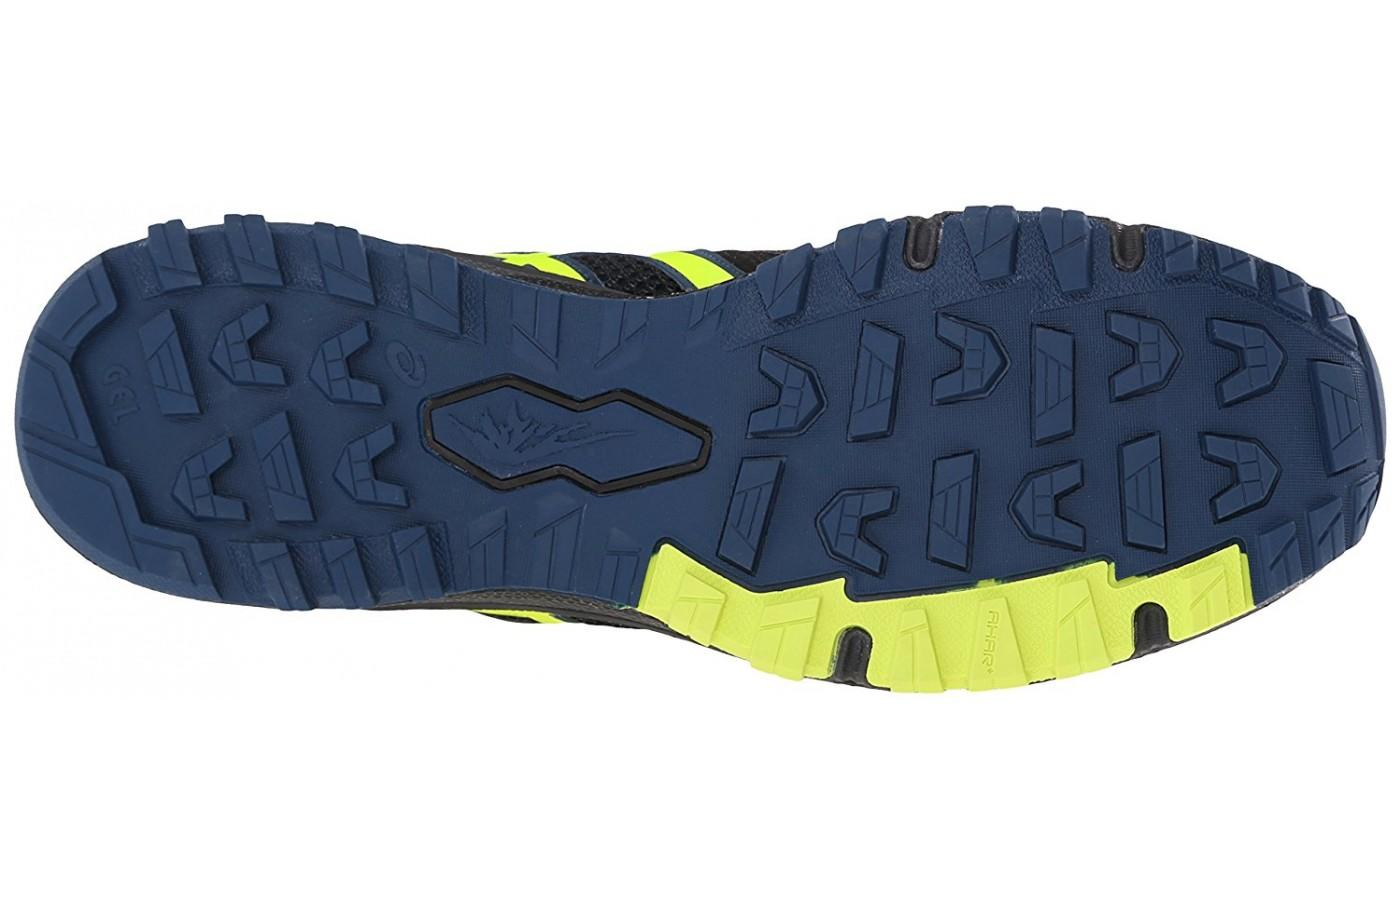 The aggresive outsole lugs and AHAR rubber can be seen here.